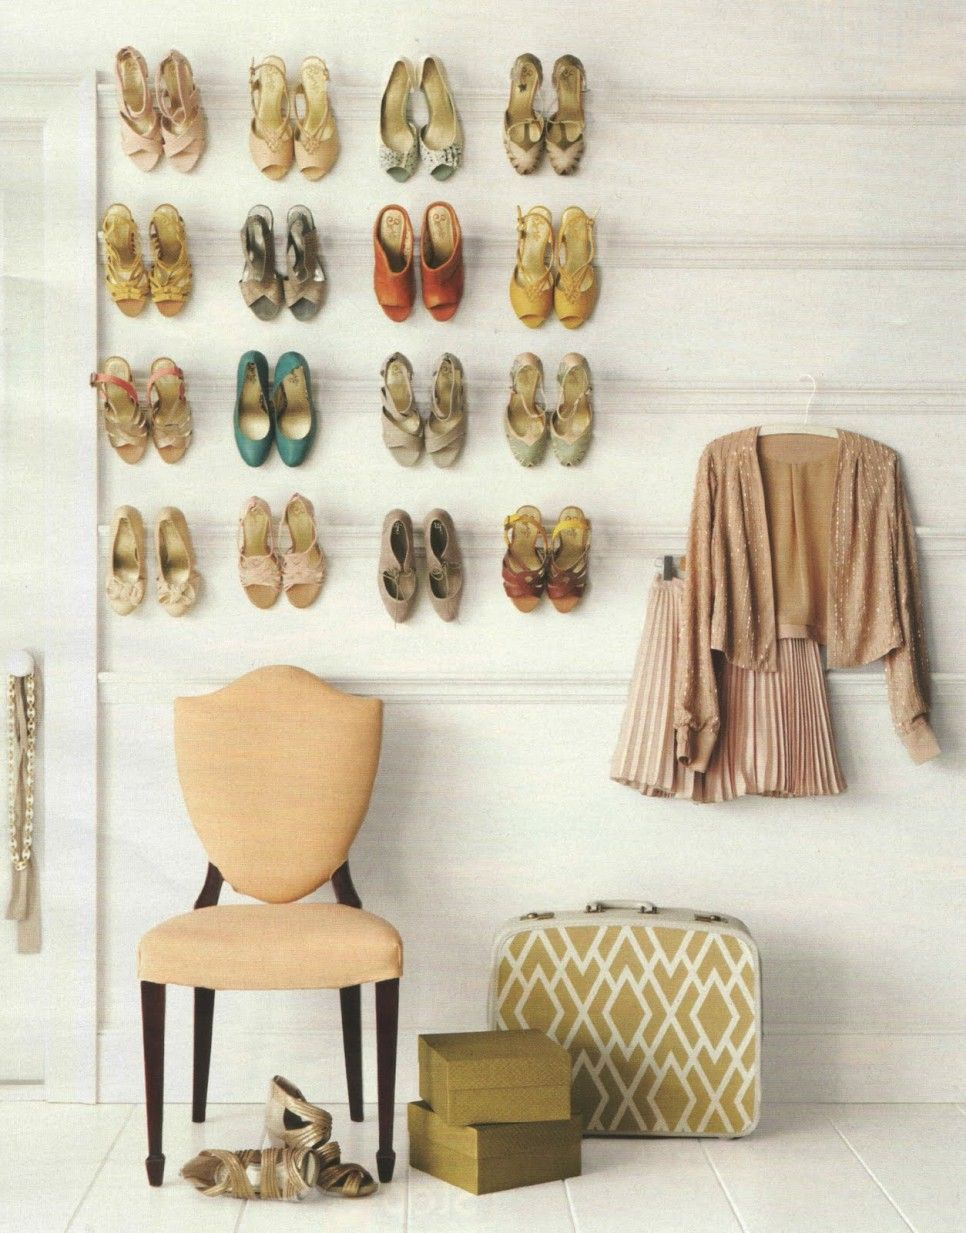 Furniture diy wall mounted display shoe rack ideas wall hanging